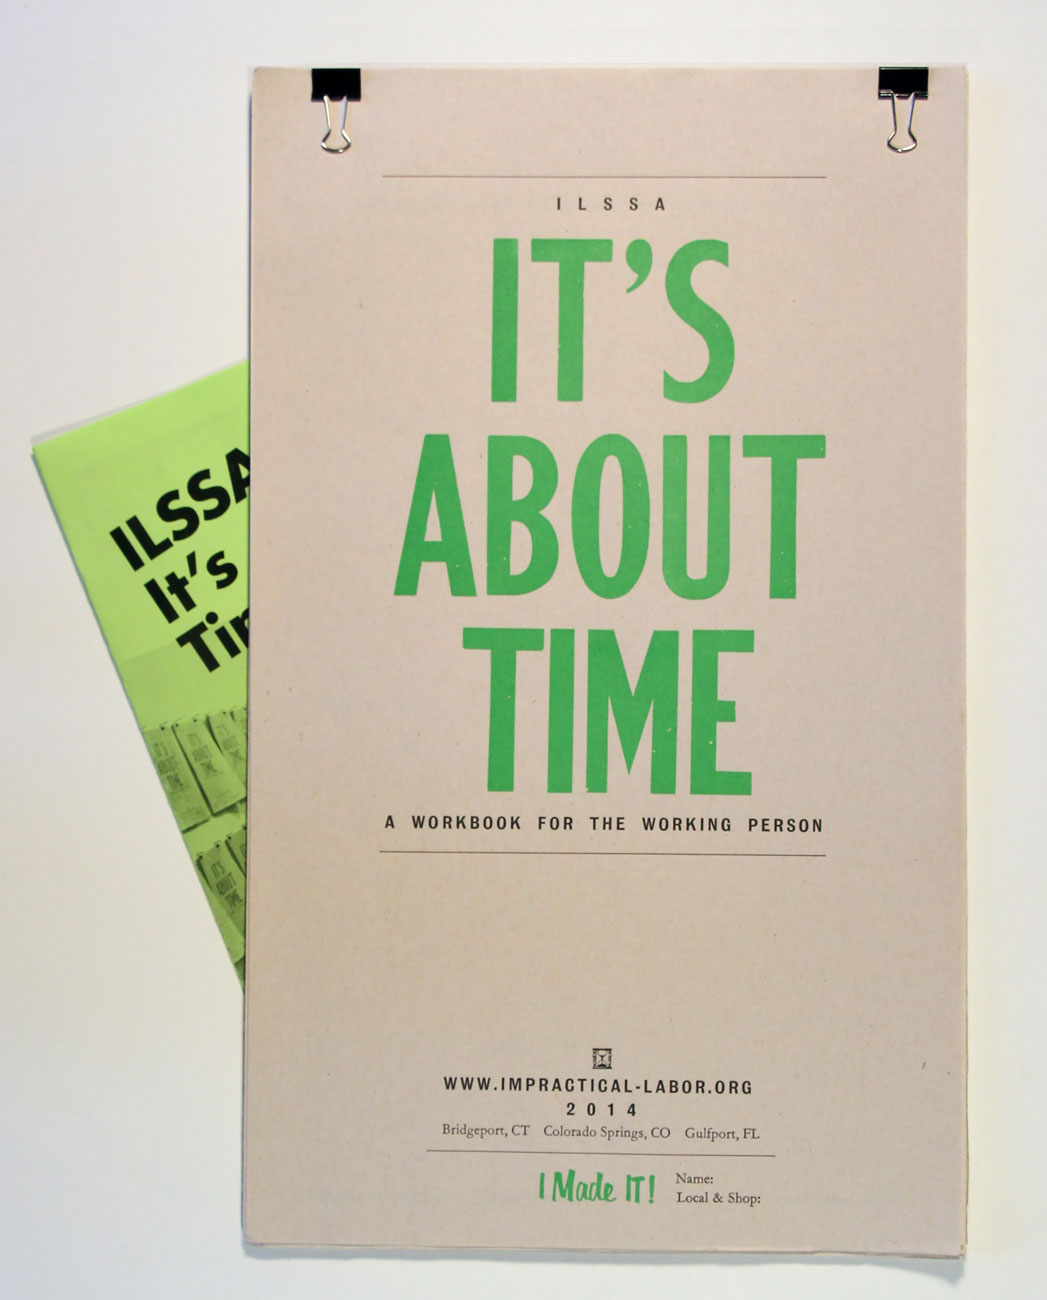 ILSSA It's About Time: A Workbook for the Working Person